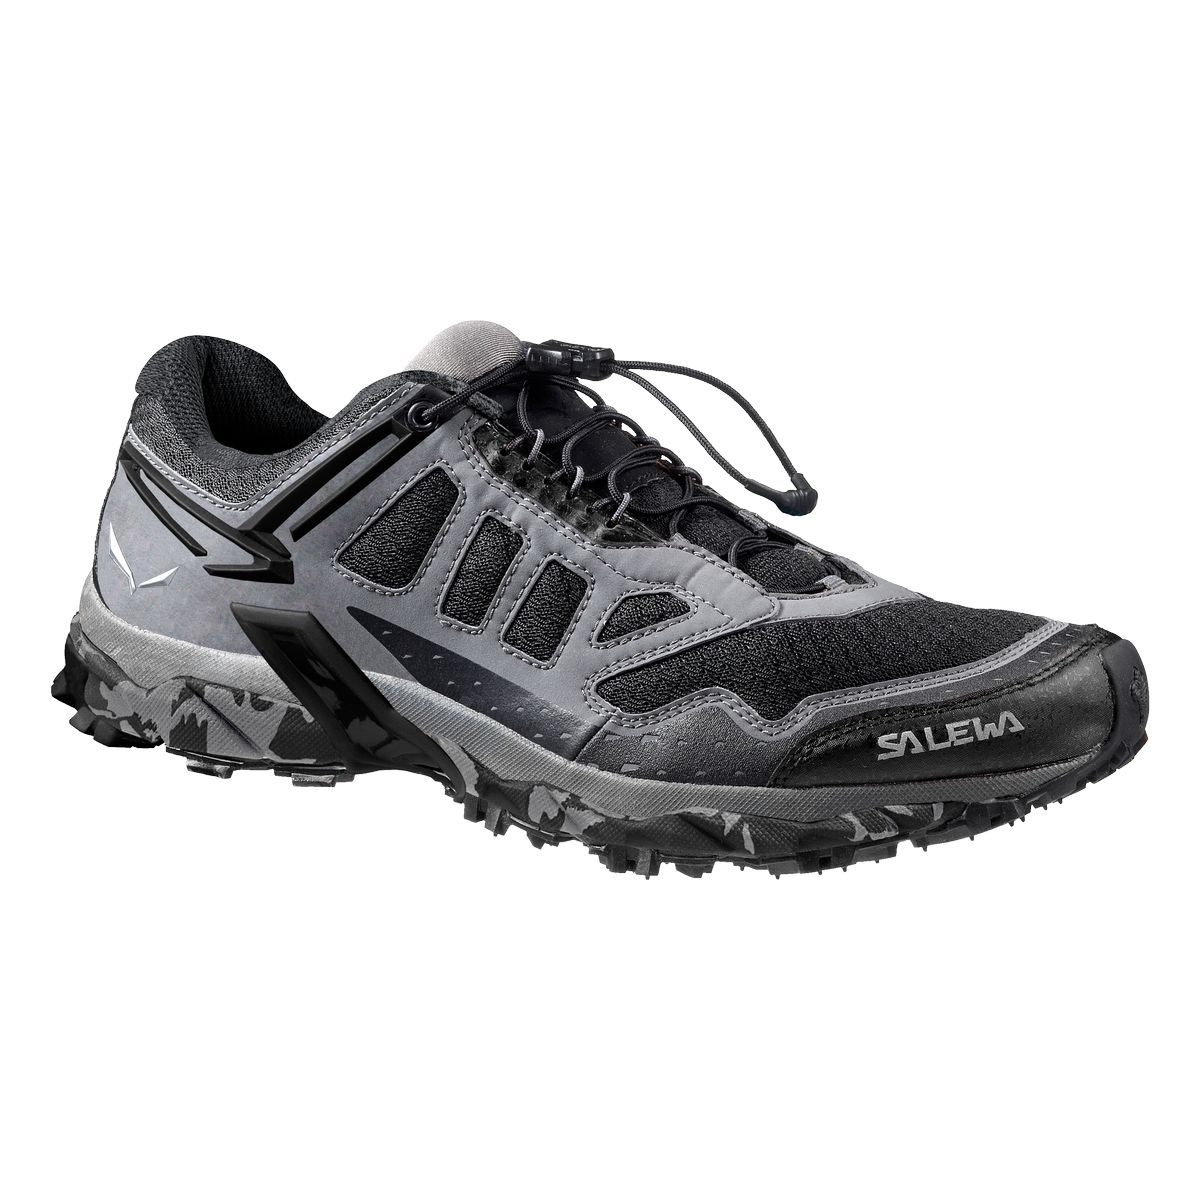 Треккинговые кроссовки Salewa 2016 Mountain Training MS ULTRA TRAIN Asphalt/Black